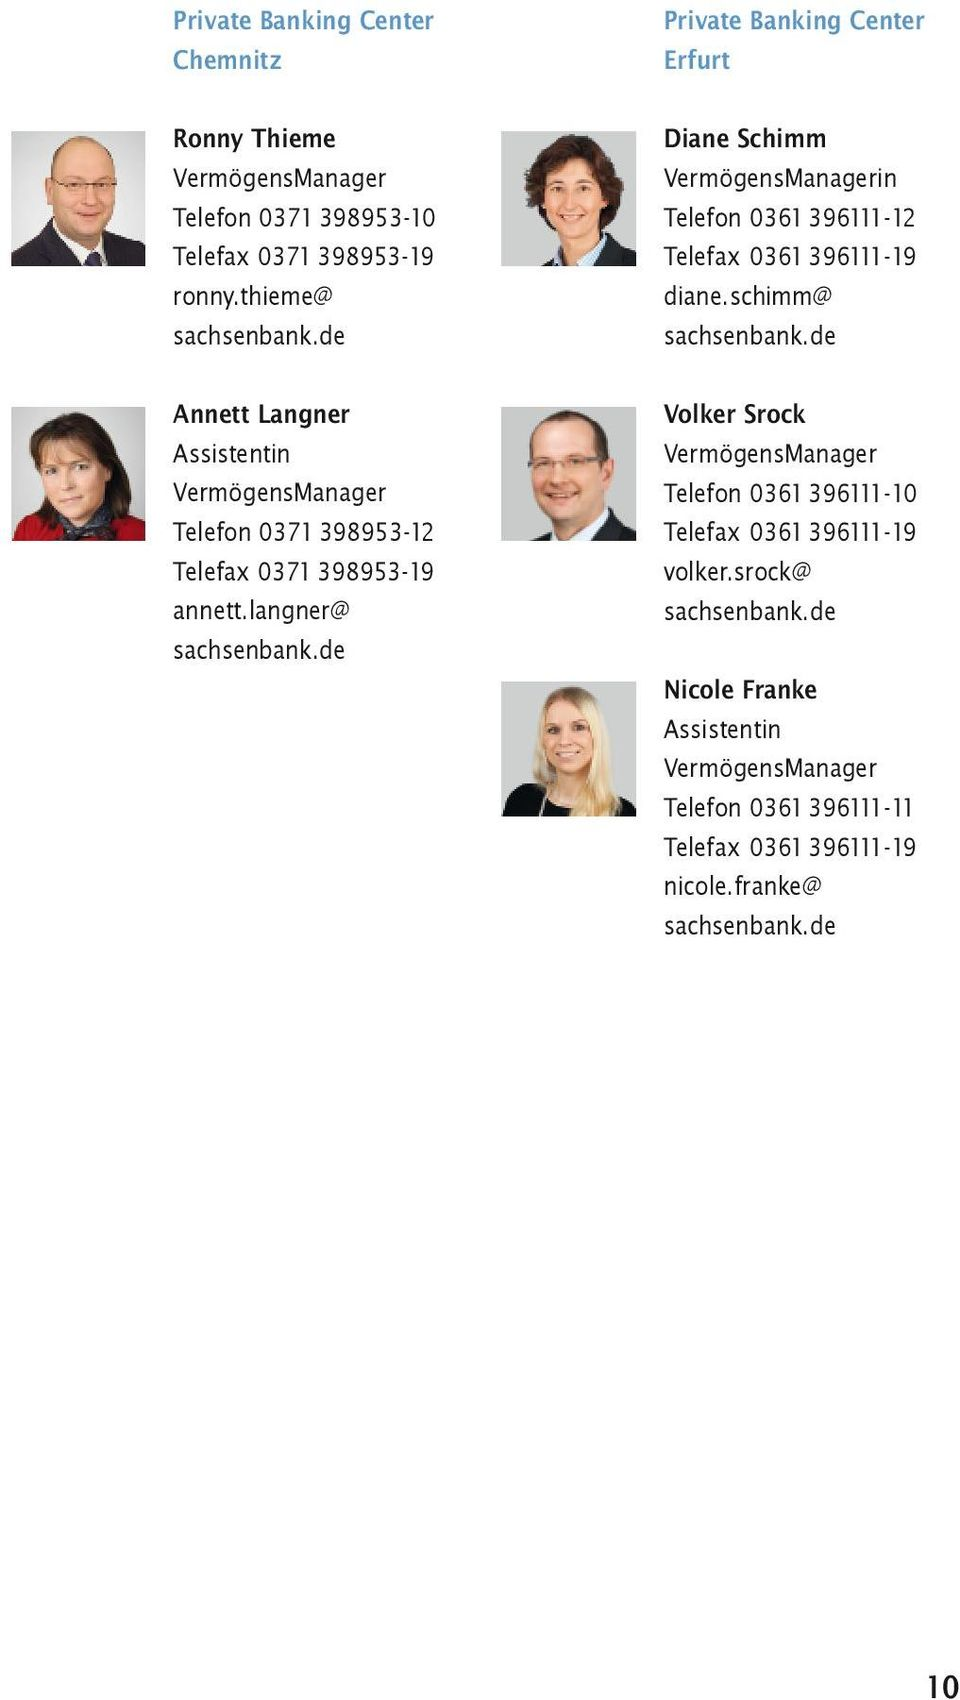 langner@ Private Banking Center Erfurt Diane Schimm in Telefon 0361 396111-12 Telefax 0361 396111-19 diane.